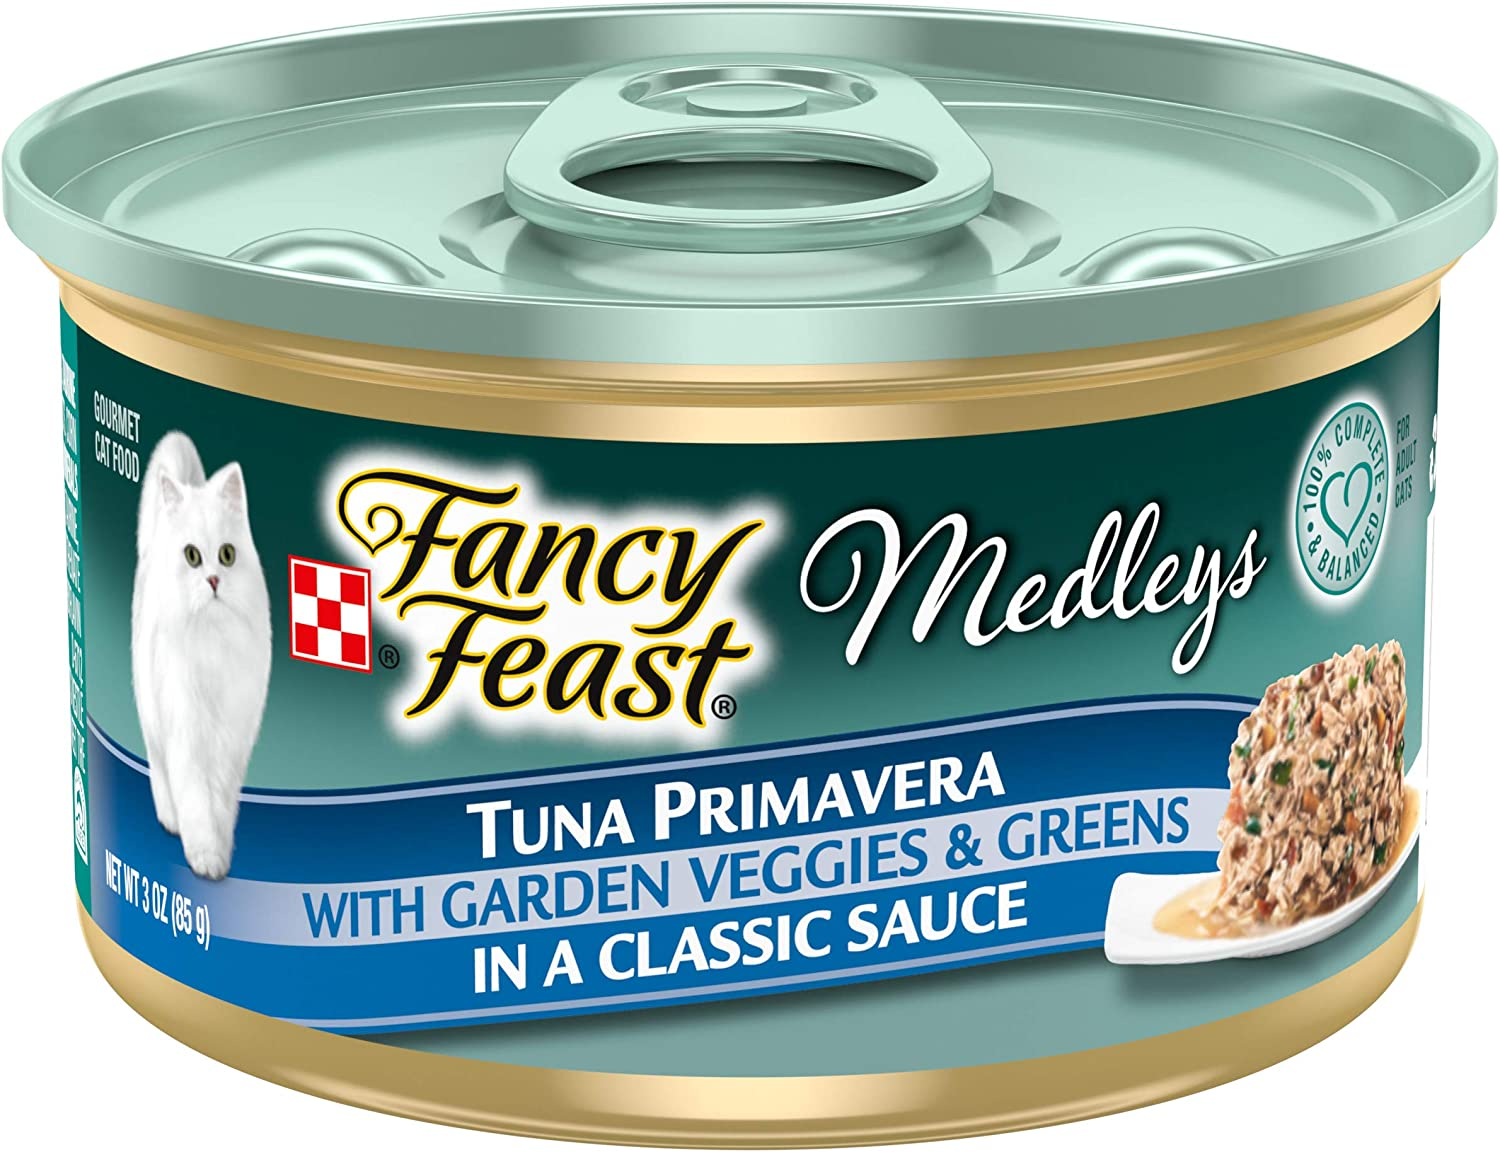 Purina Fancy Feast Medleys Adult Canned Wet Cat Food - (24) 3 oz. Cans